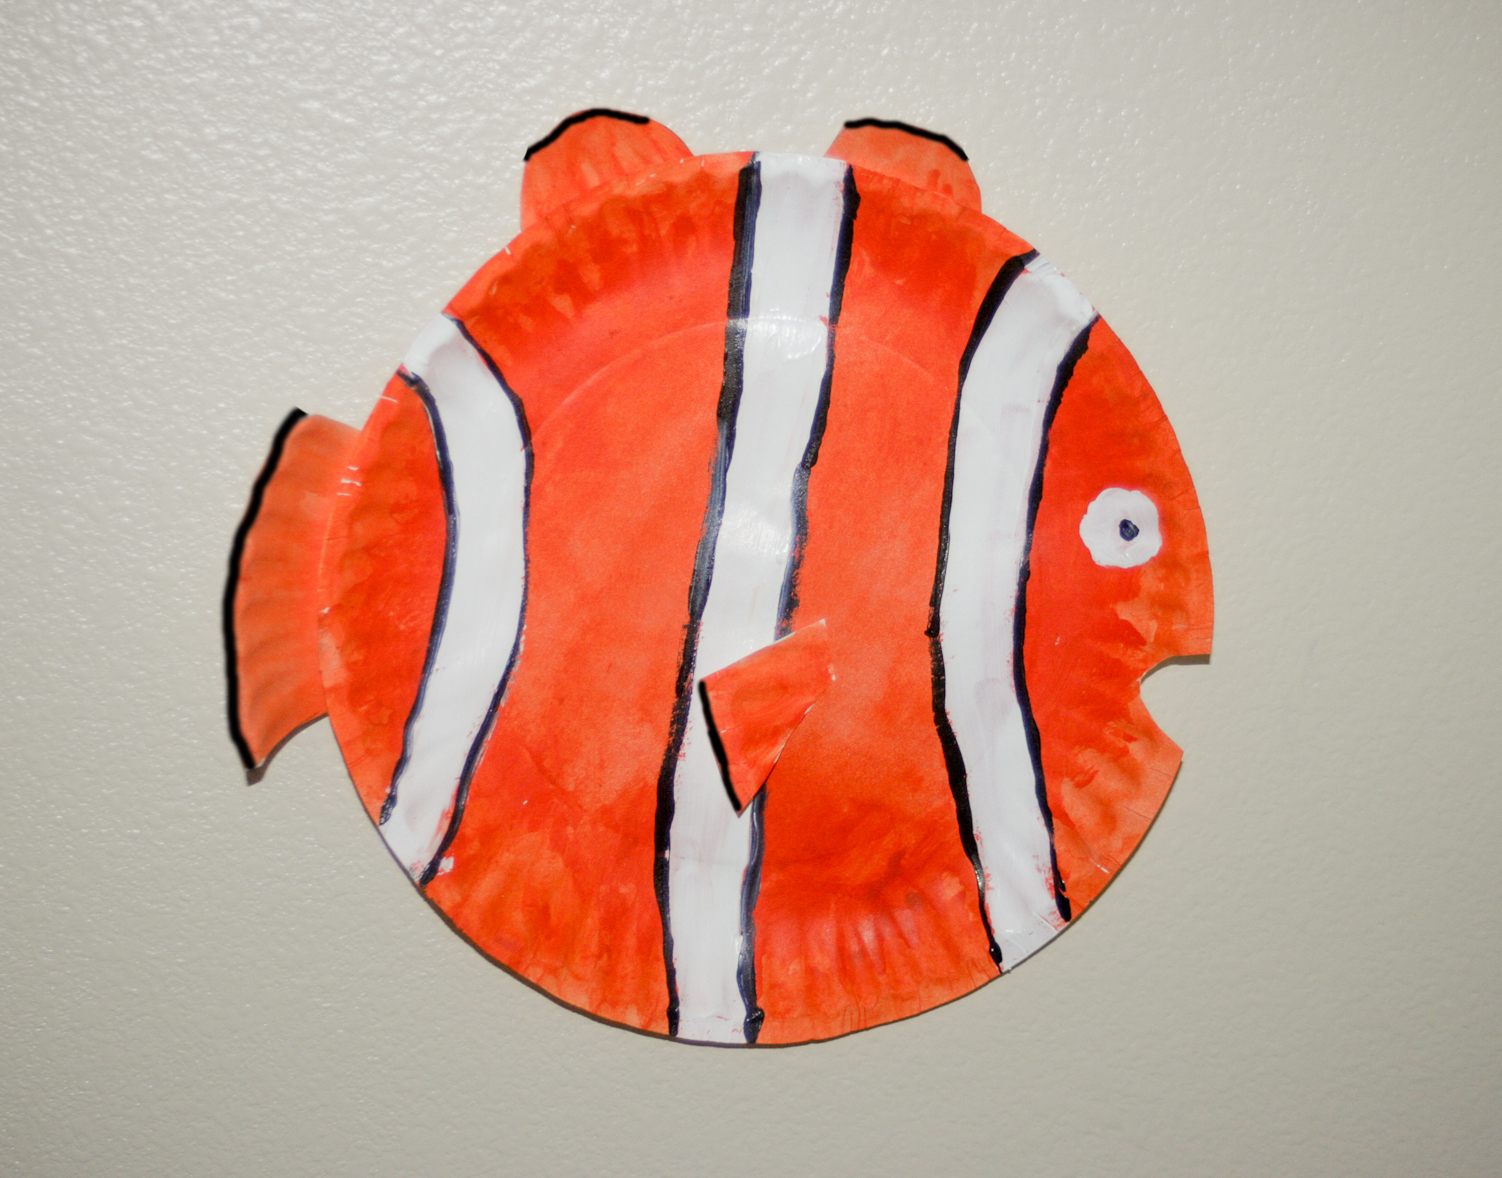 & Mommy Minutes: Paper Plate Fish